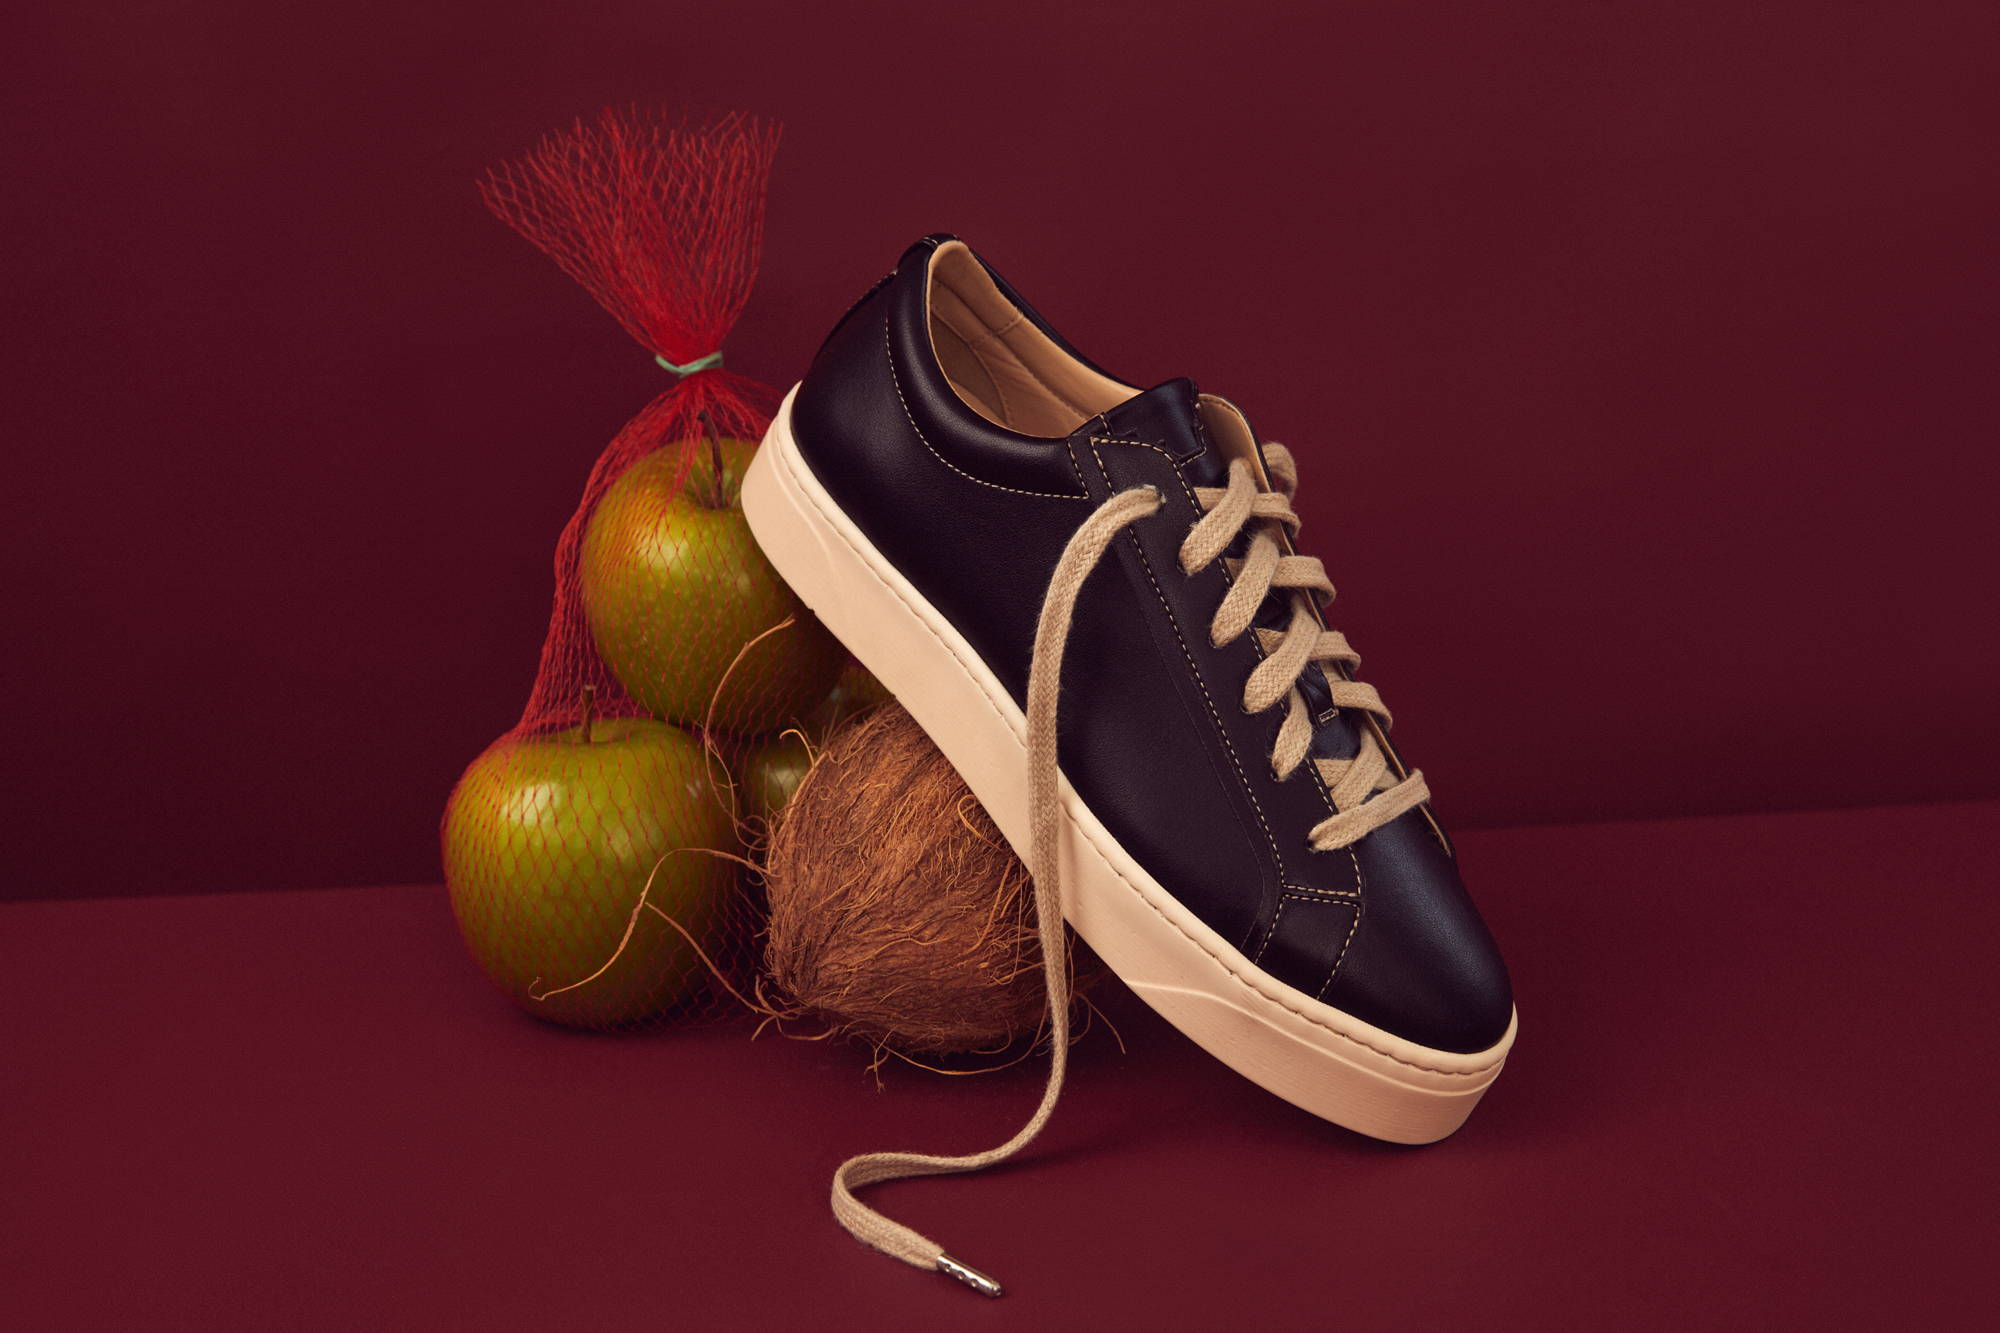 Plant-based luxury footwear - our Mel vegan apple and coconut sneaker pictured on a dark red background alongside apples and coconuts